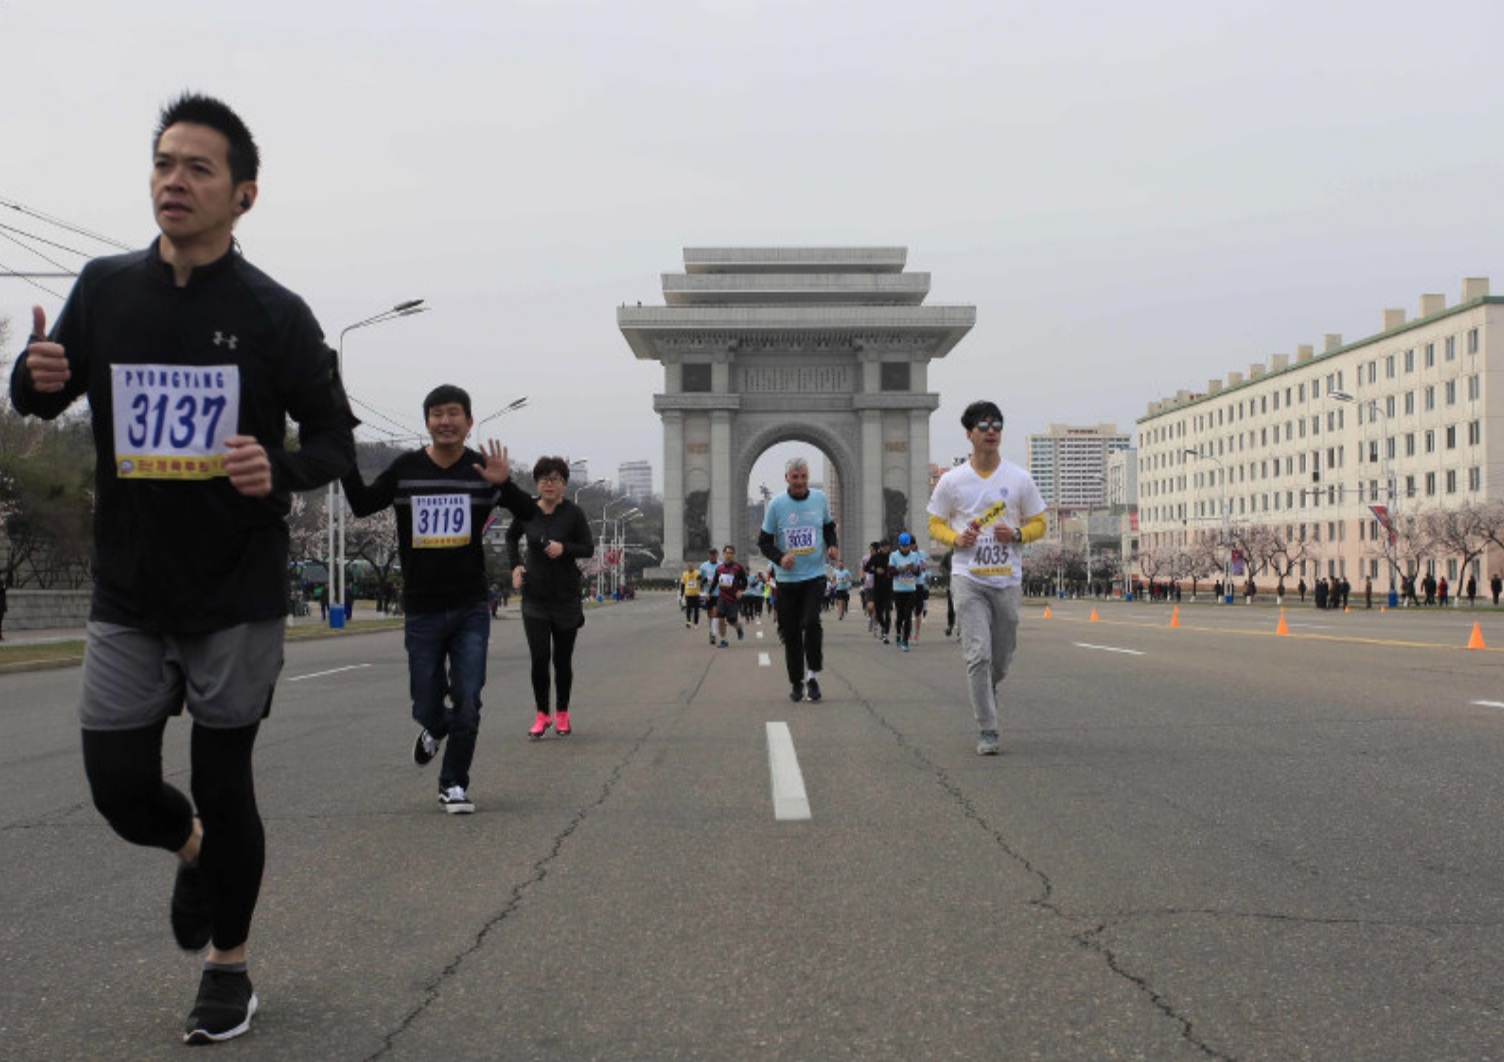 Marathon: Hundreds of foreigners join Pyongyang race as tensions ease